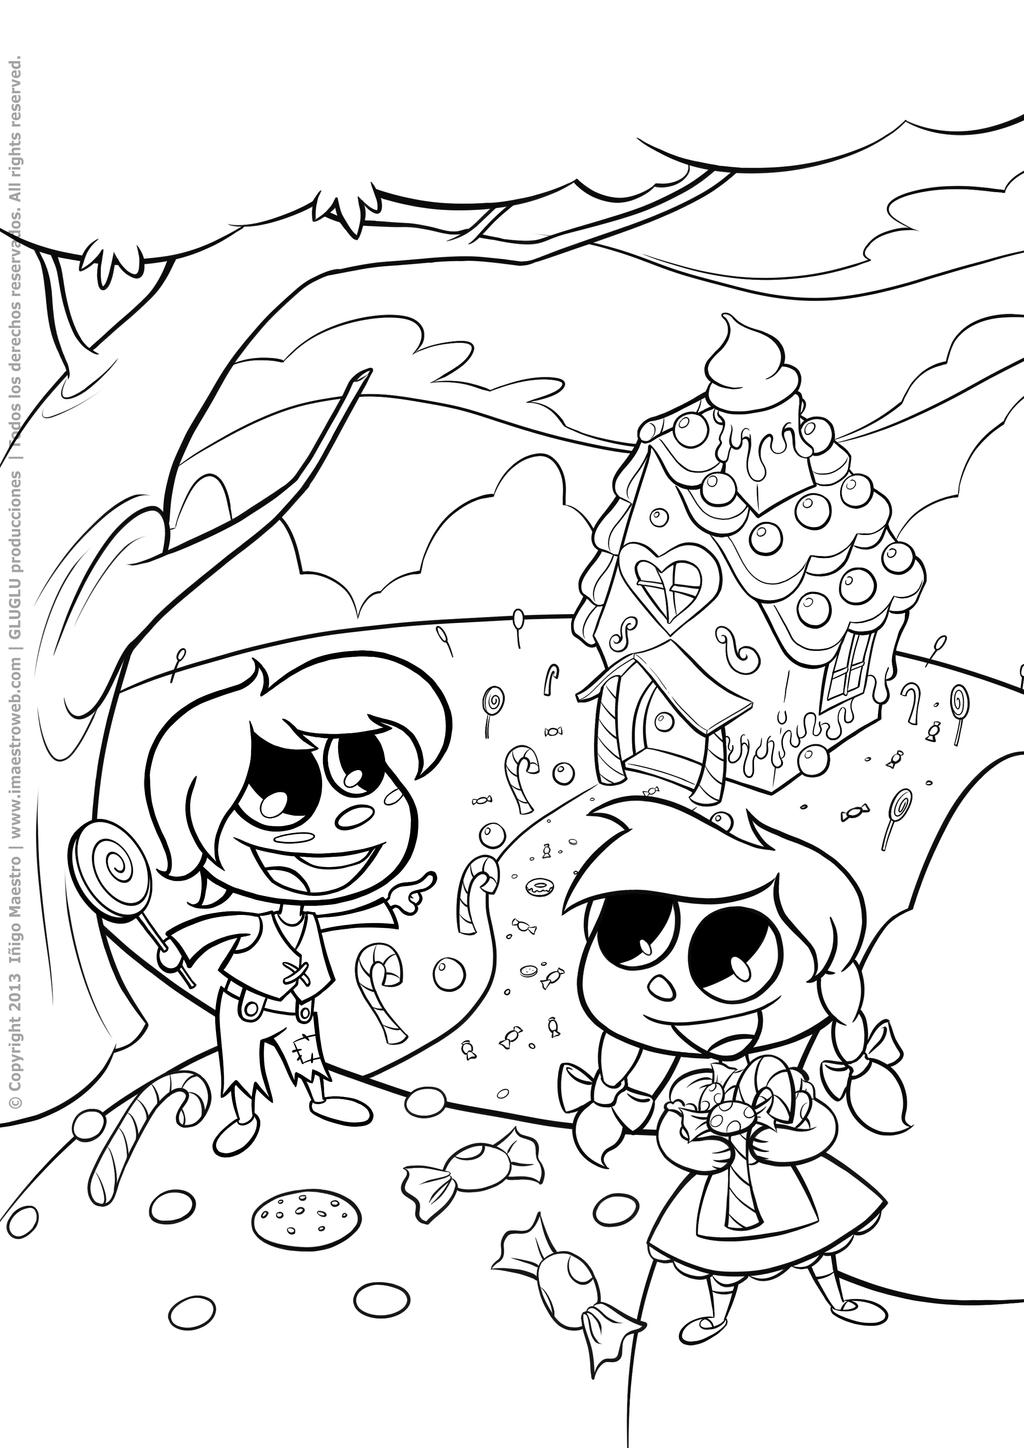 ''Hansel and Gretel'' line art (2013) by Batliebre